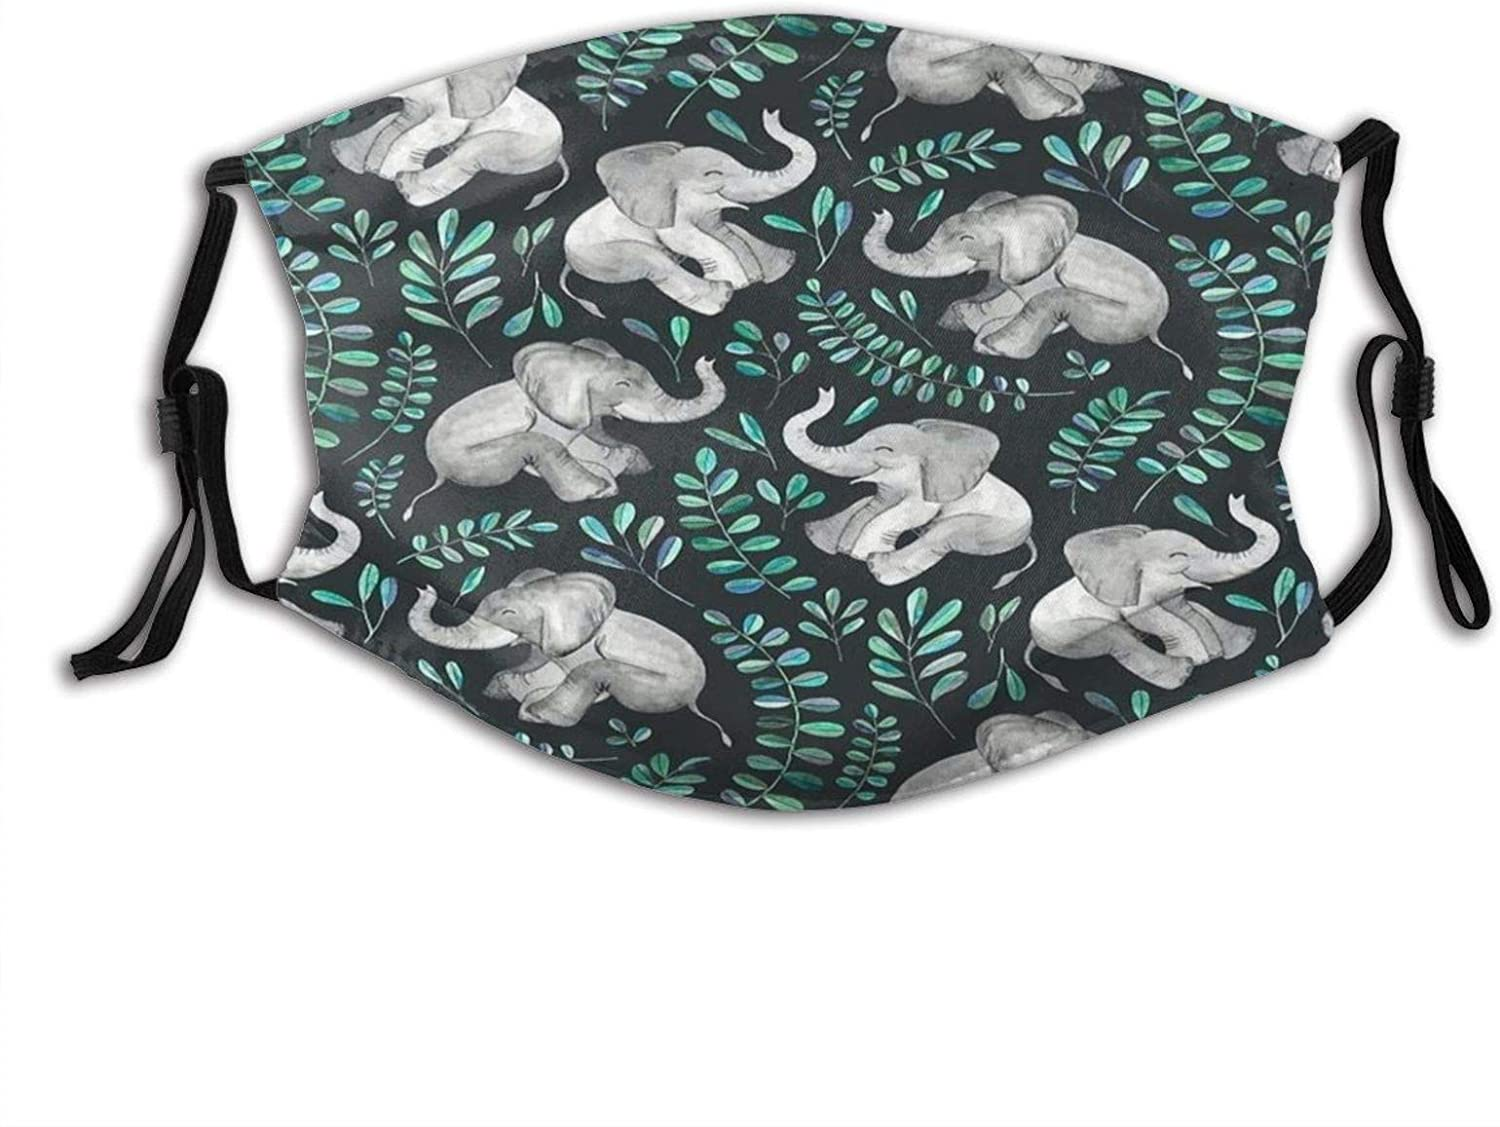 Happy Elephant,Dustproof Windproof Face Mask,Reusable,Washable Cloth,Face Cover,Cover for Dust Men Women